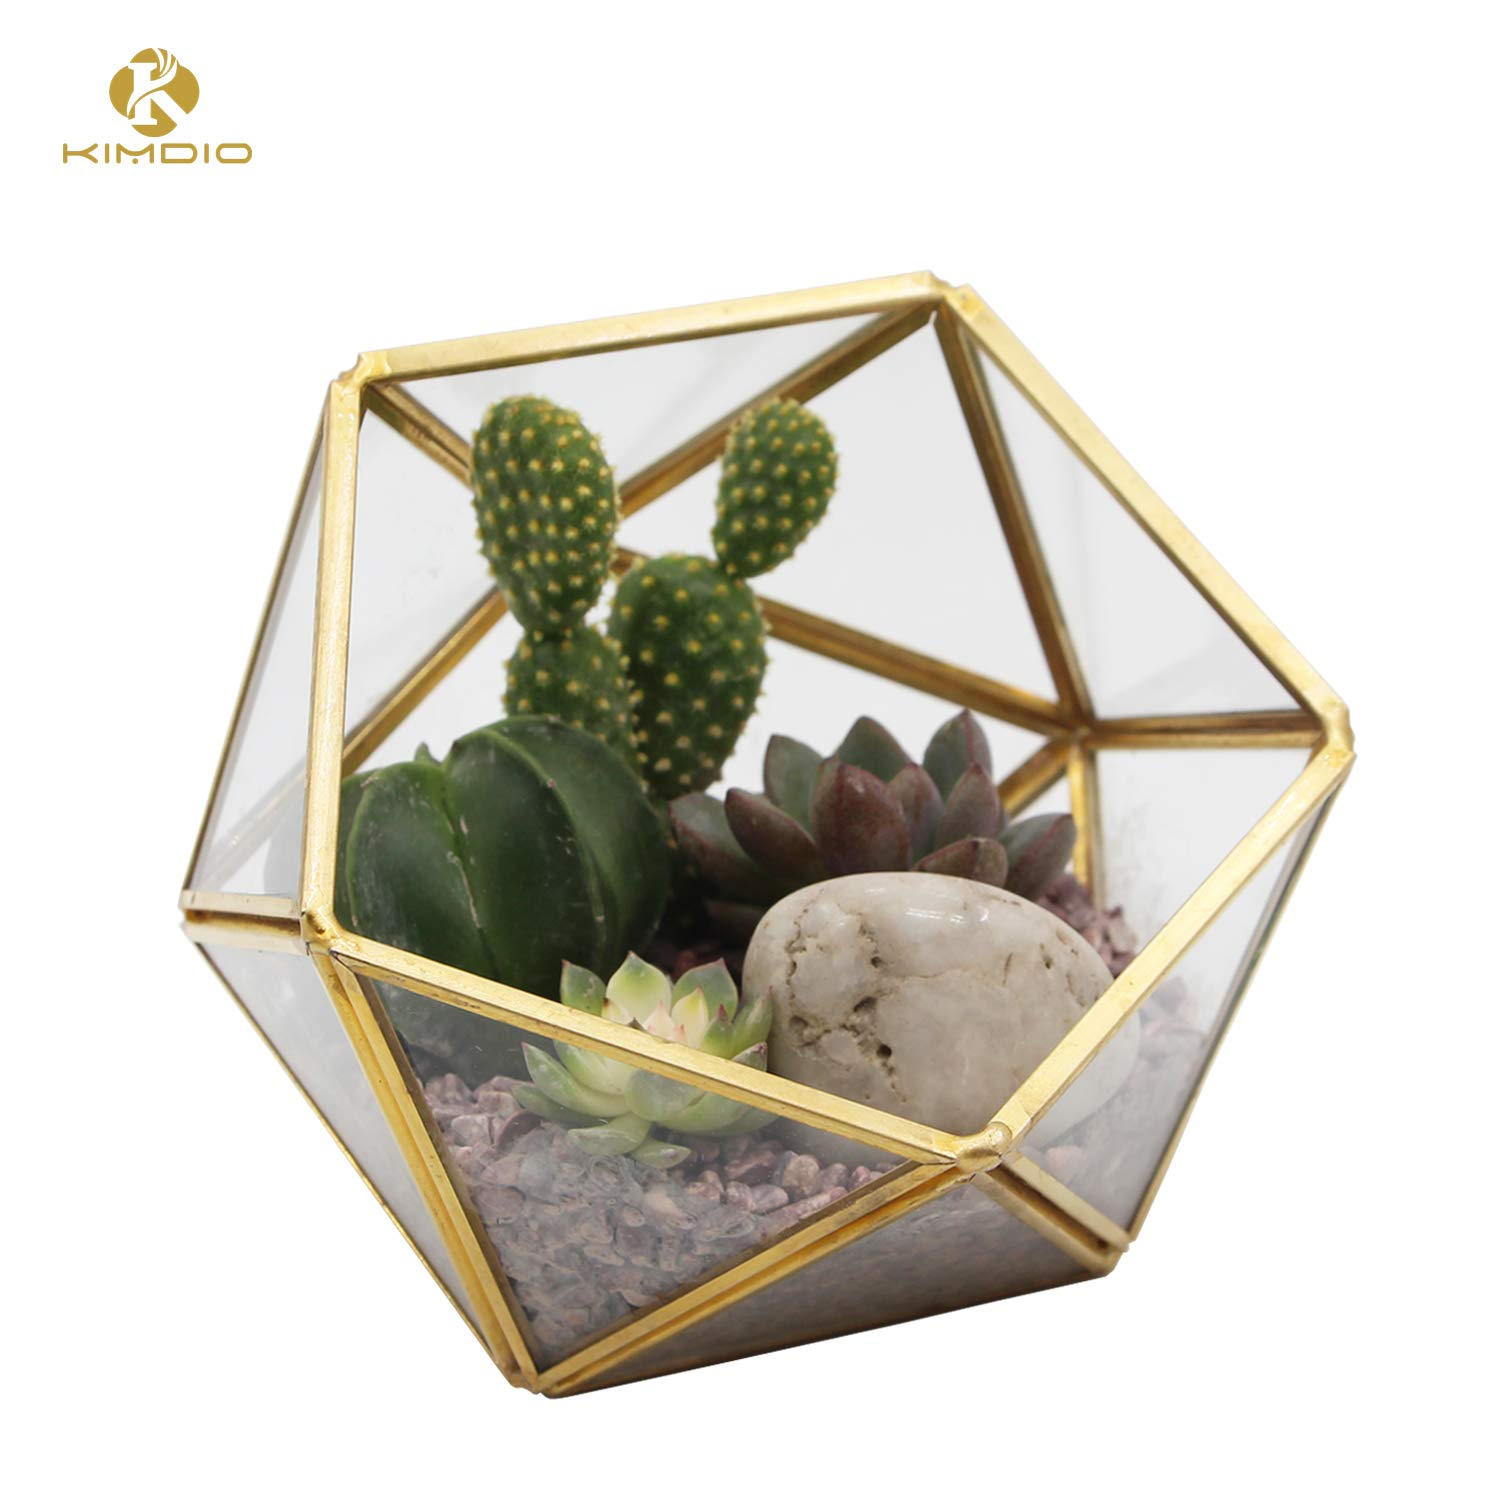 Kimdio Geometric Terrarium Clear Glass Tabletop Planter Air Plant Holder Display for Succulent Fern Moss Air Plants Holder Miniature Outdoor Fairy Garden DIY Gift M-Gold